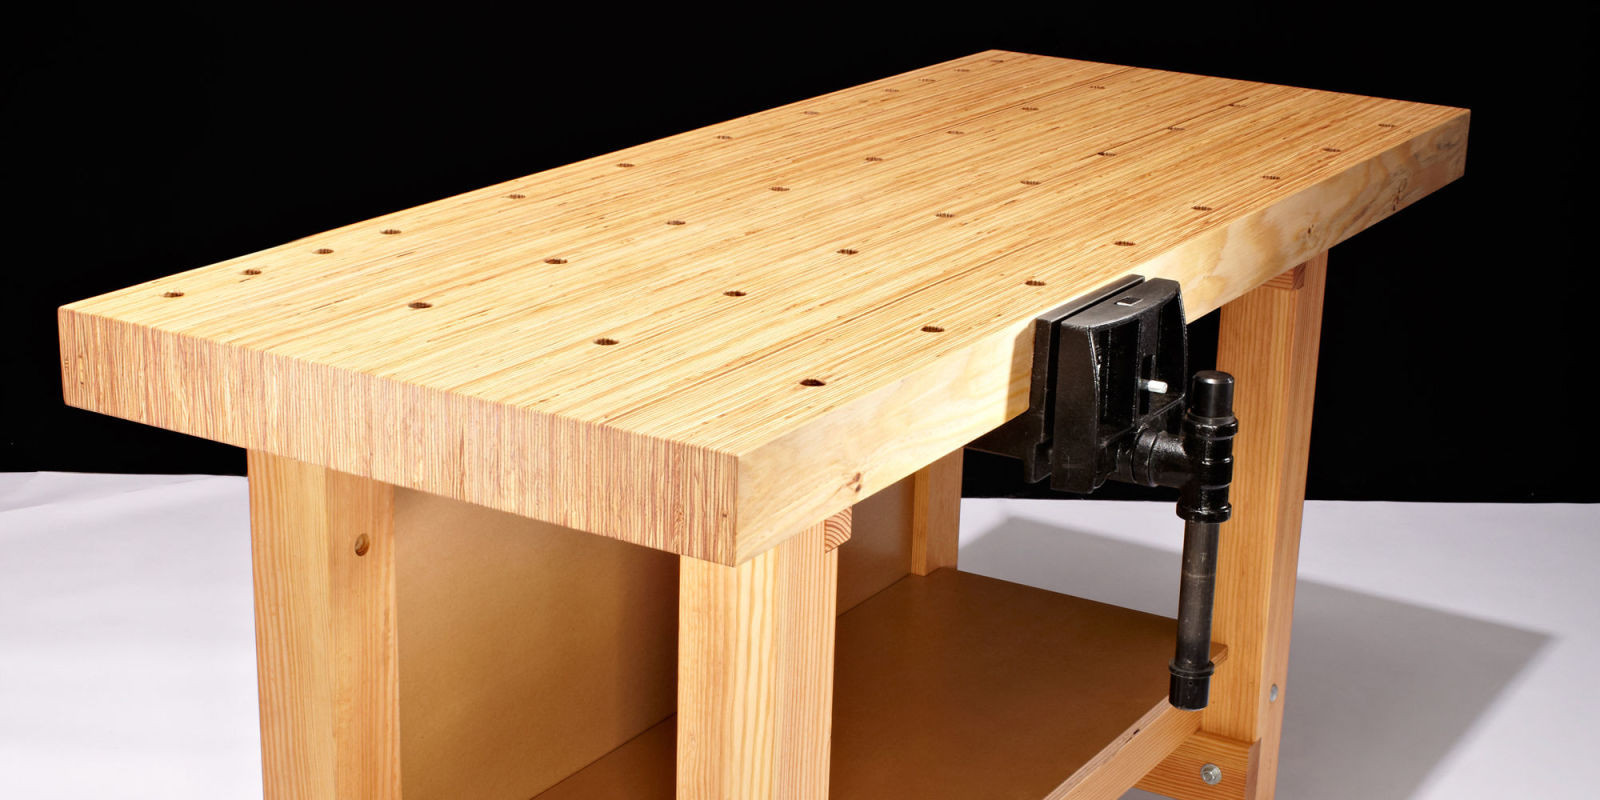 Best ideas about Work Bench DIY . Save or Pin How to Build This DIY Workbench Now.